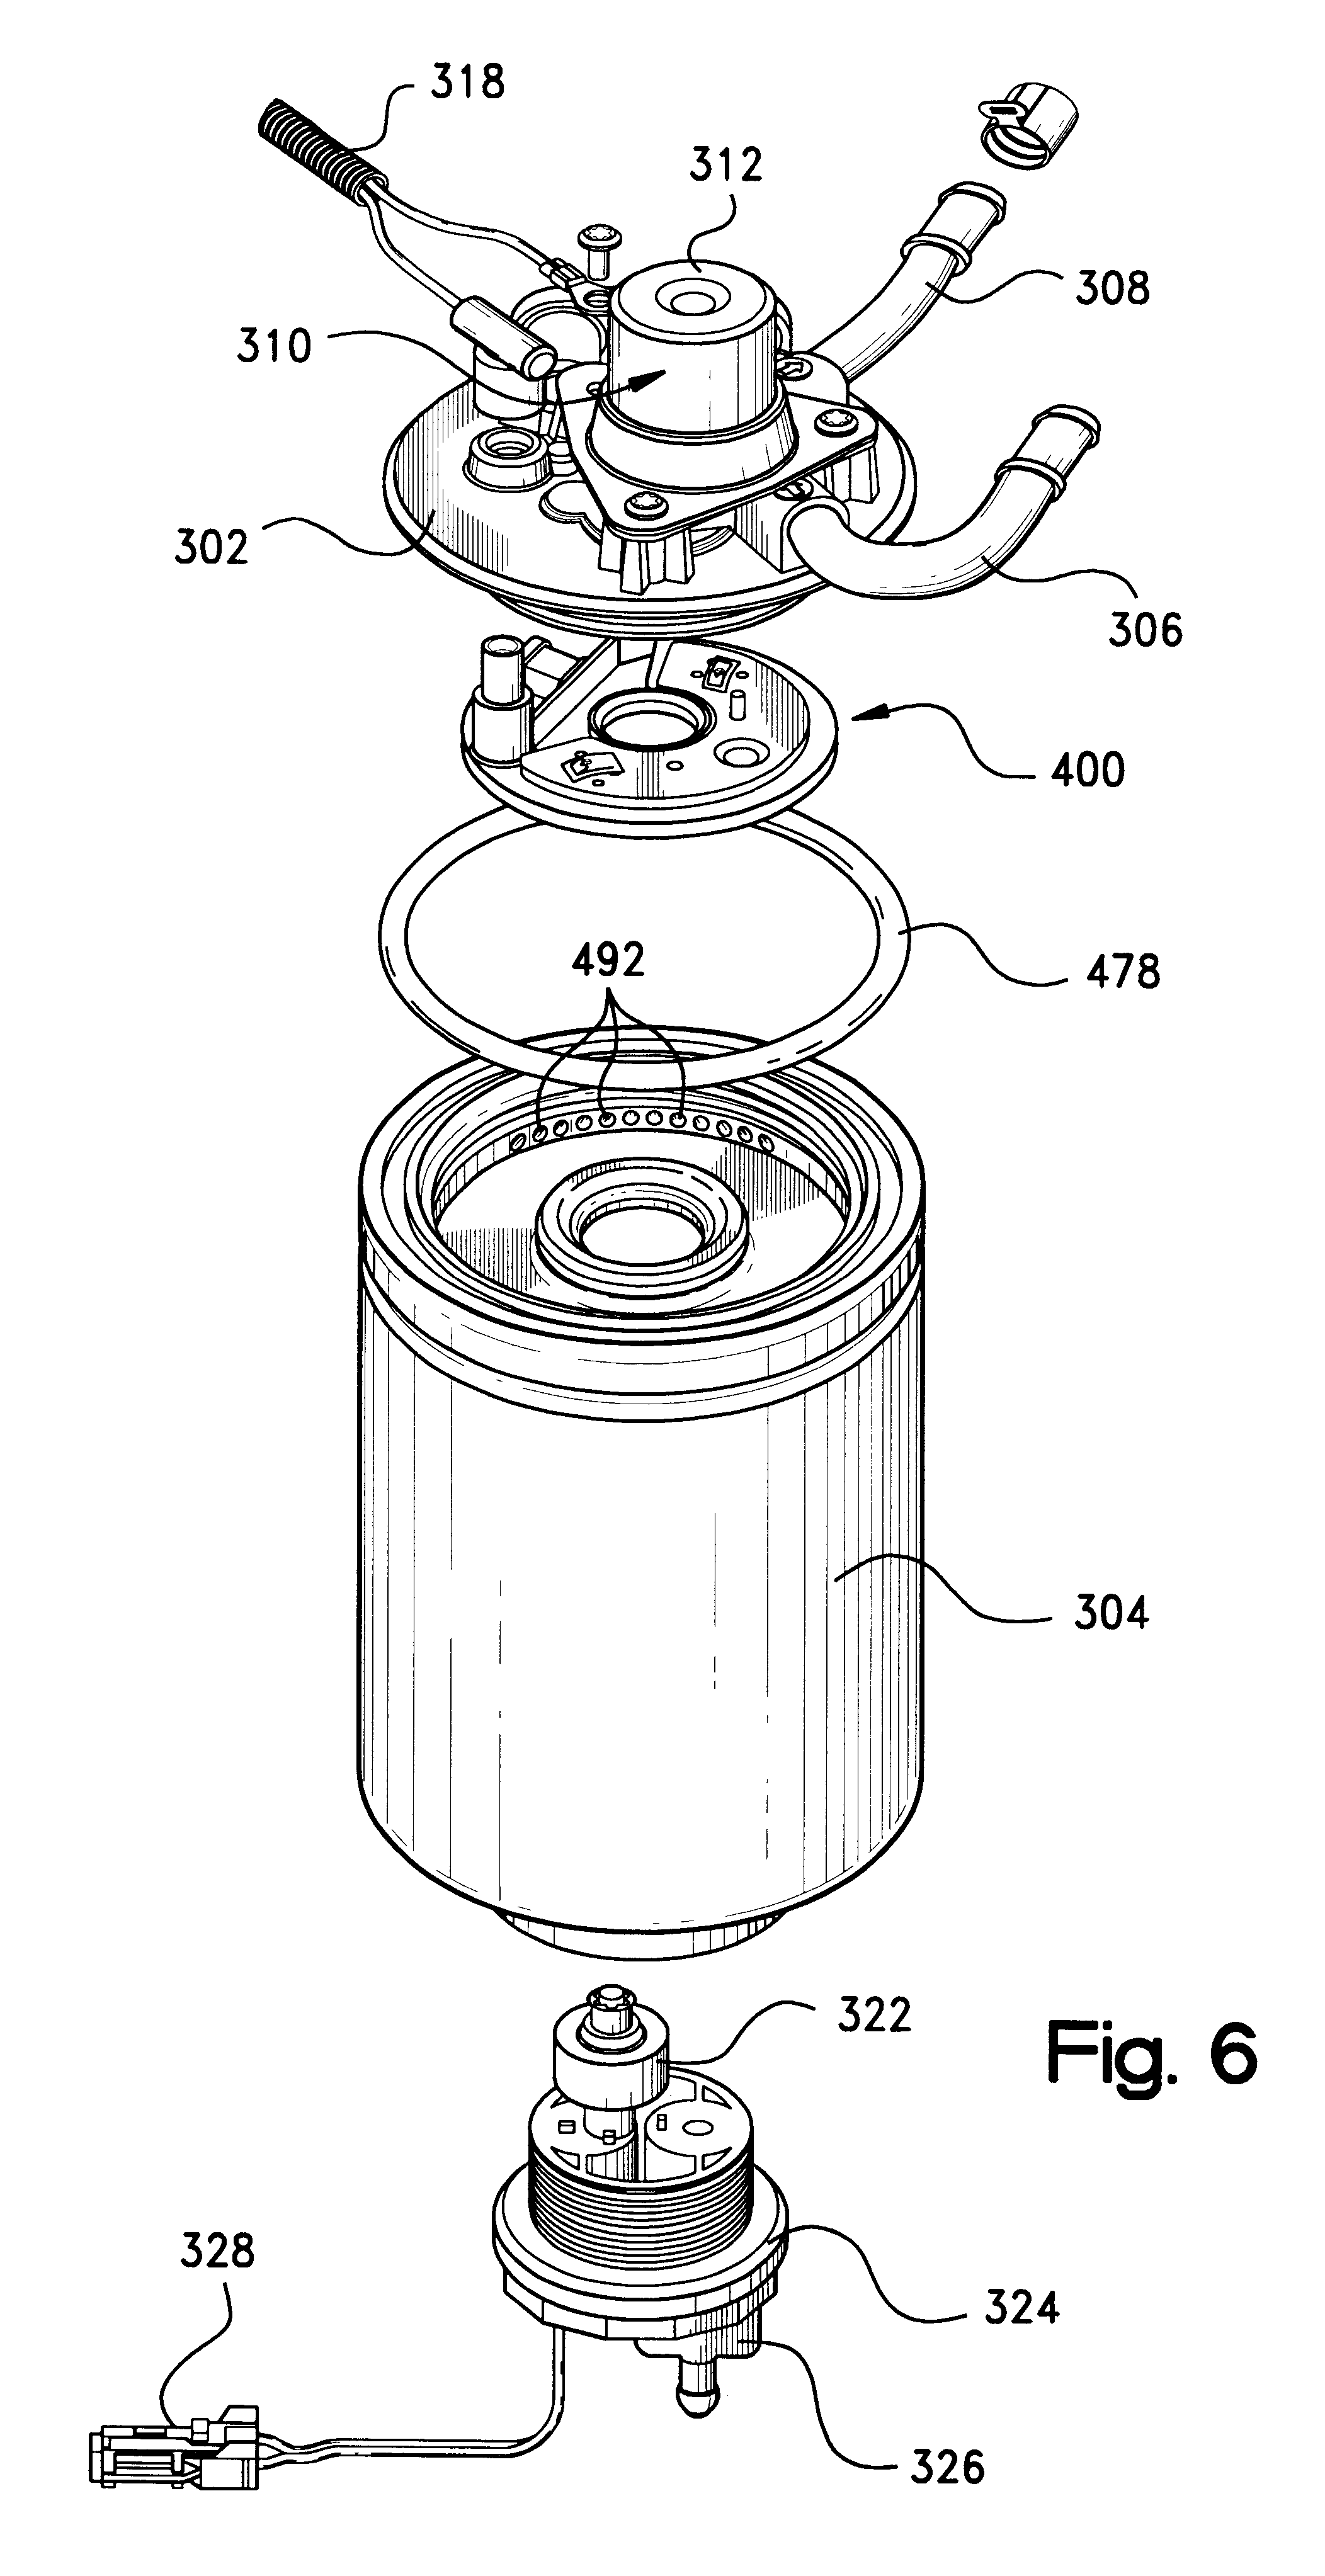 patent us6328883 - fuel filter assembly with priming pump